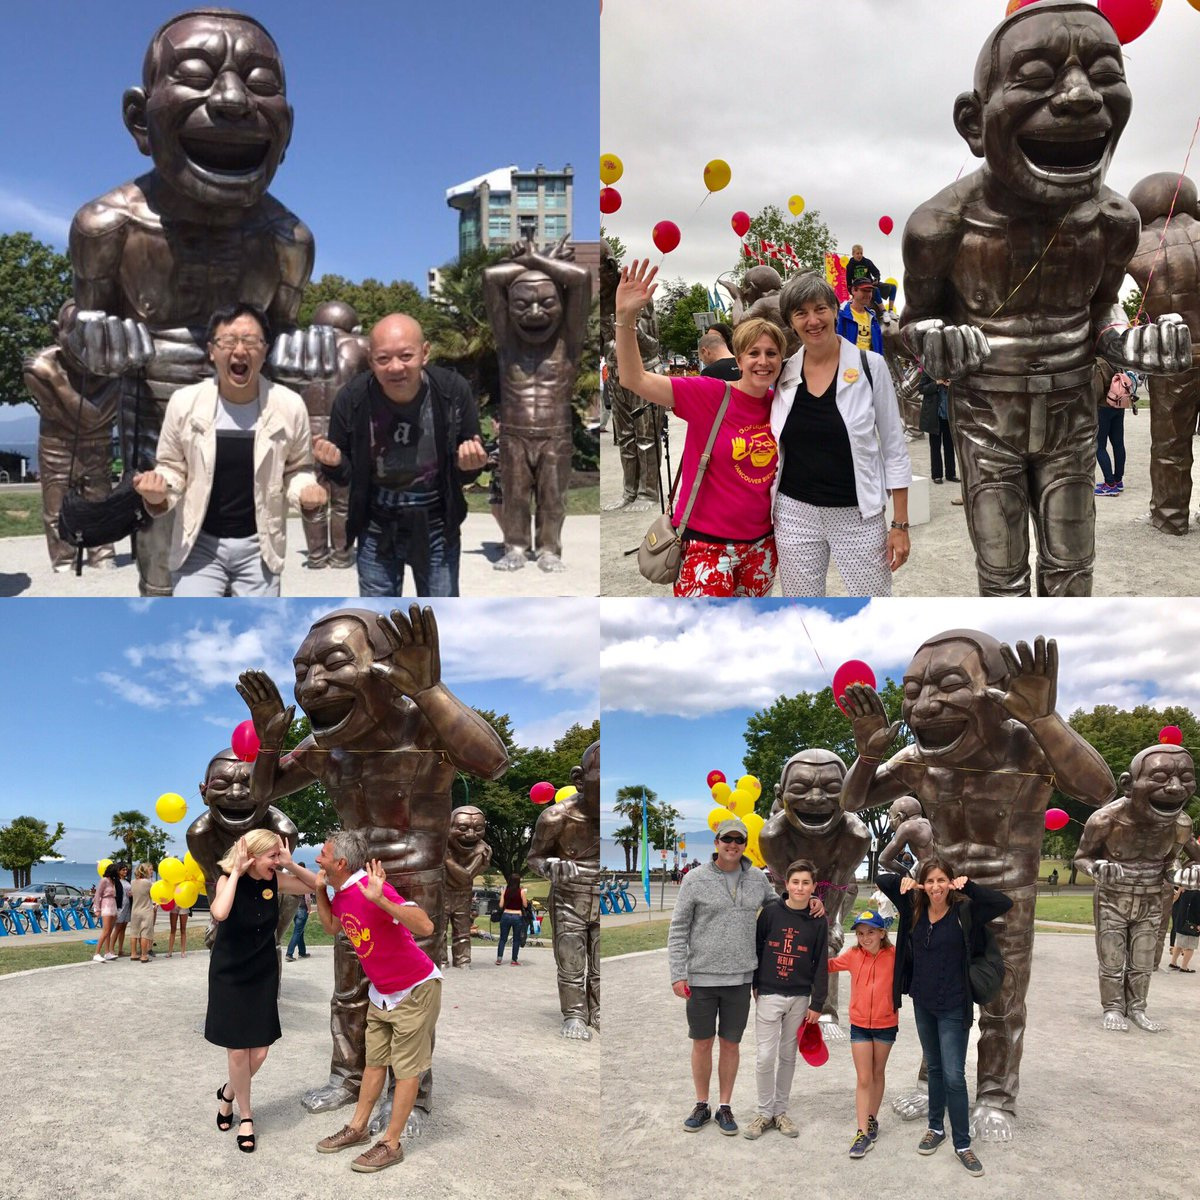 We&#39;re thrilled to see #AmazeingLaughter included! So much #publicengagement at this #publicart! #VanBiennale  https://www. nytimes.com/interactive/20 17/09/07/travel/what-to-do-36-hours-in-vancouver-british-columbia-canada.html &nbsp; … <br>http://pic.twitter.com/92ewq6hTou